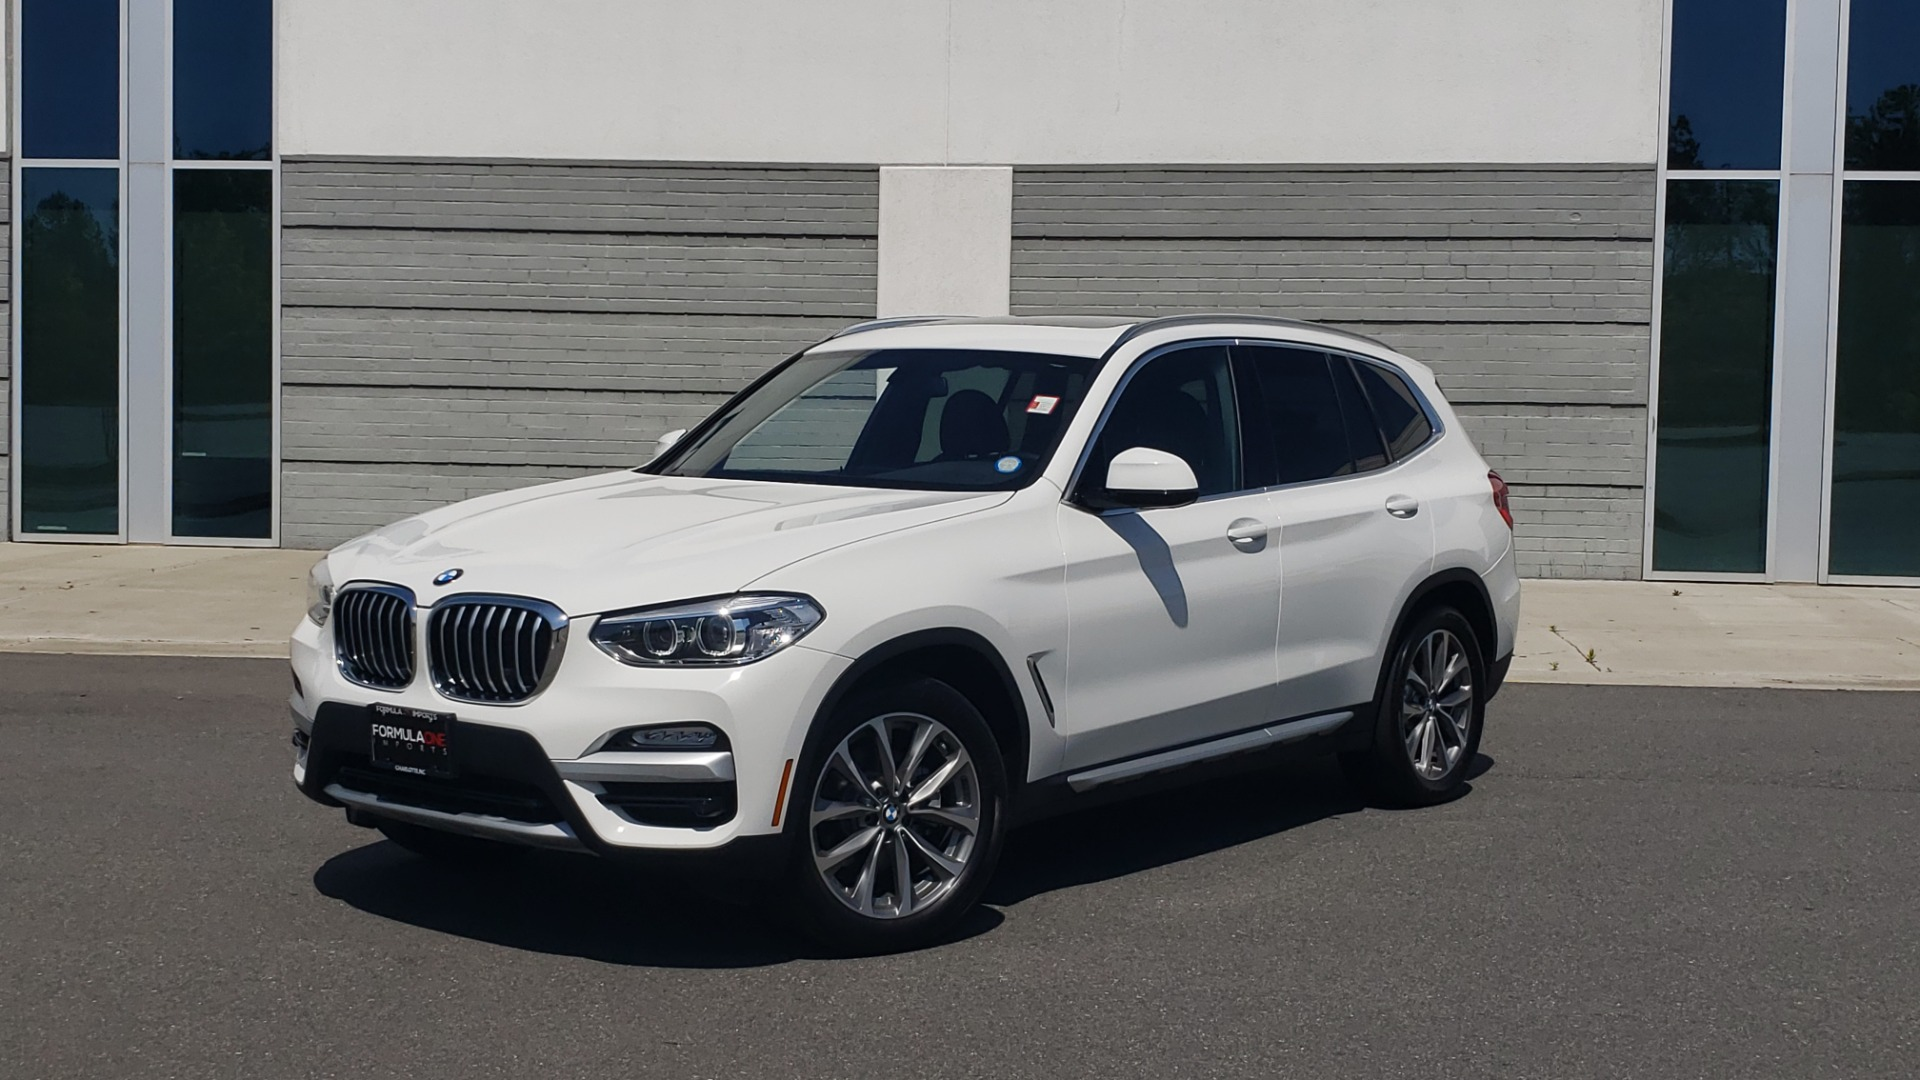 Used 2018 BMW X3 XDRIVE30I / CONV PKG / PANO-ROOF / HTD STS / REARVIEW for sale $33,995 at Formula Imports in Charlotte NC 28227 1